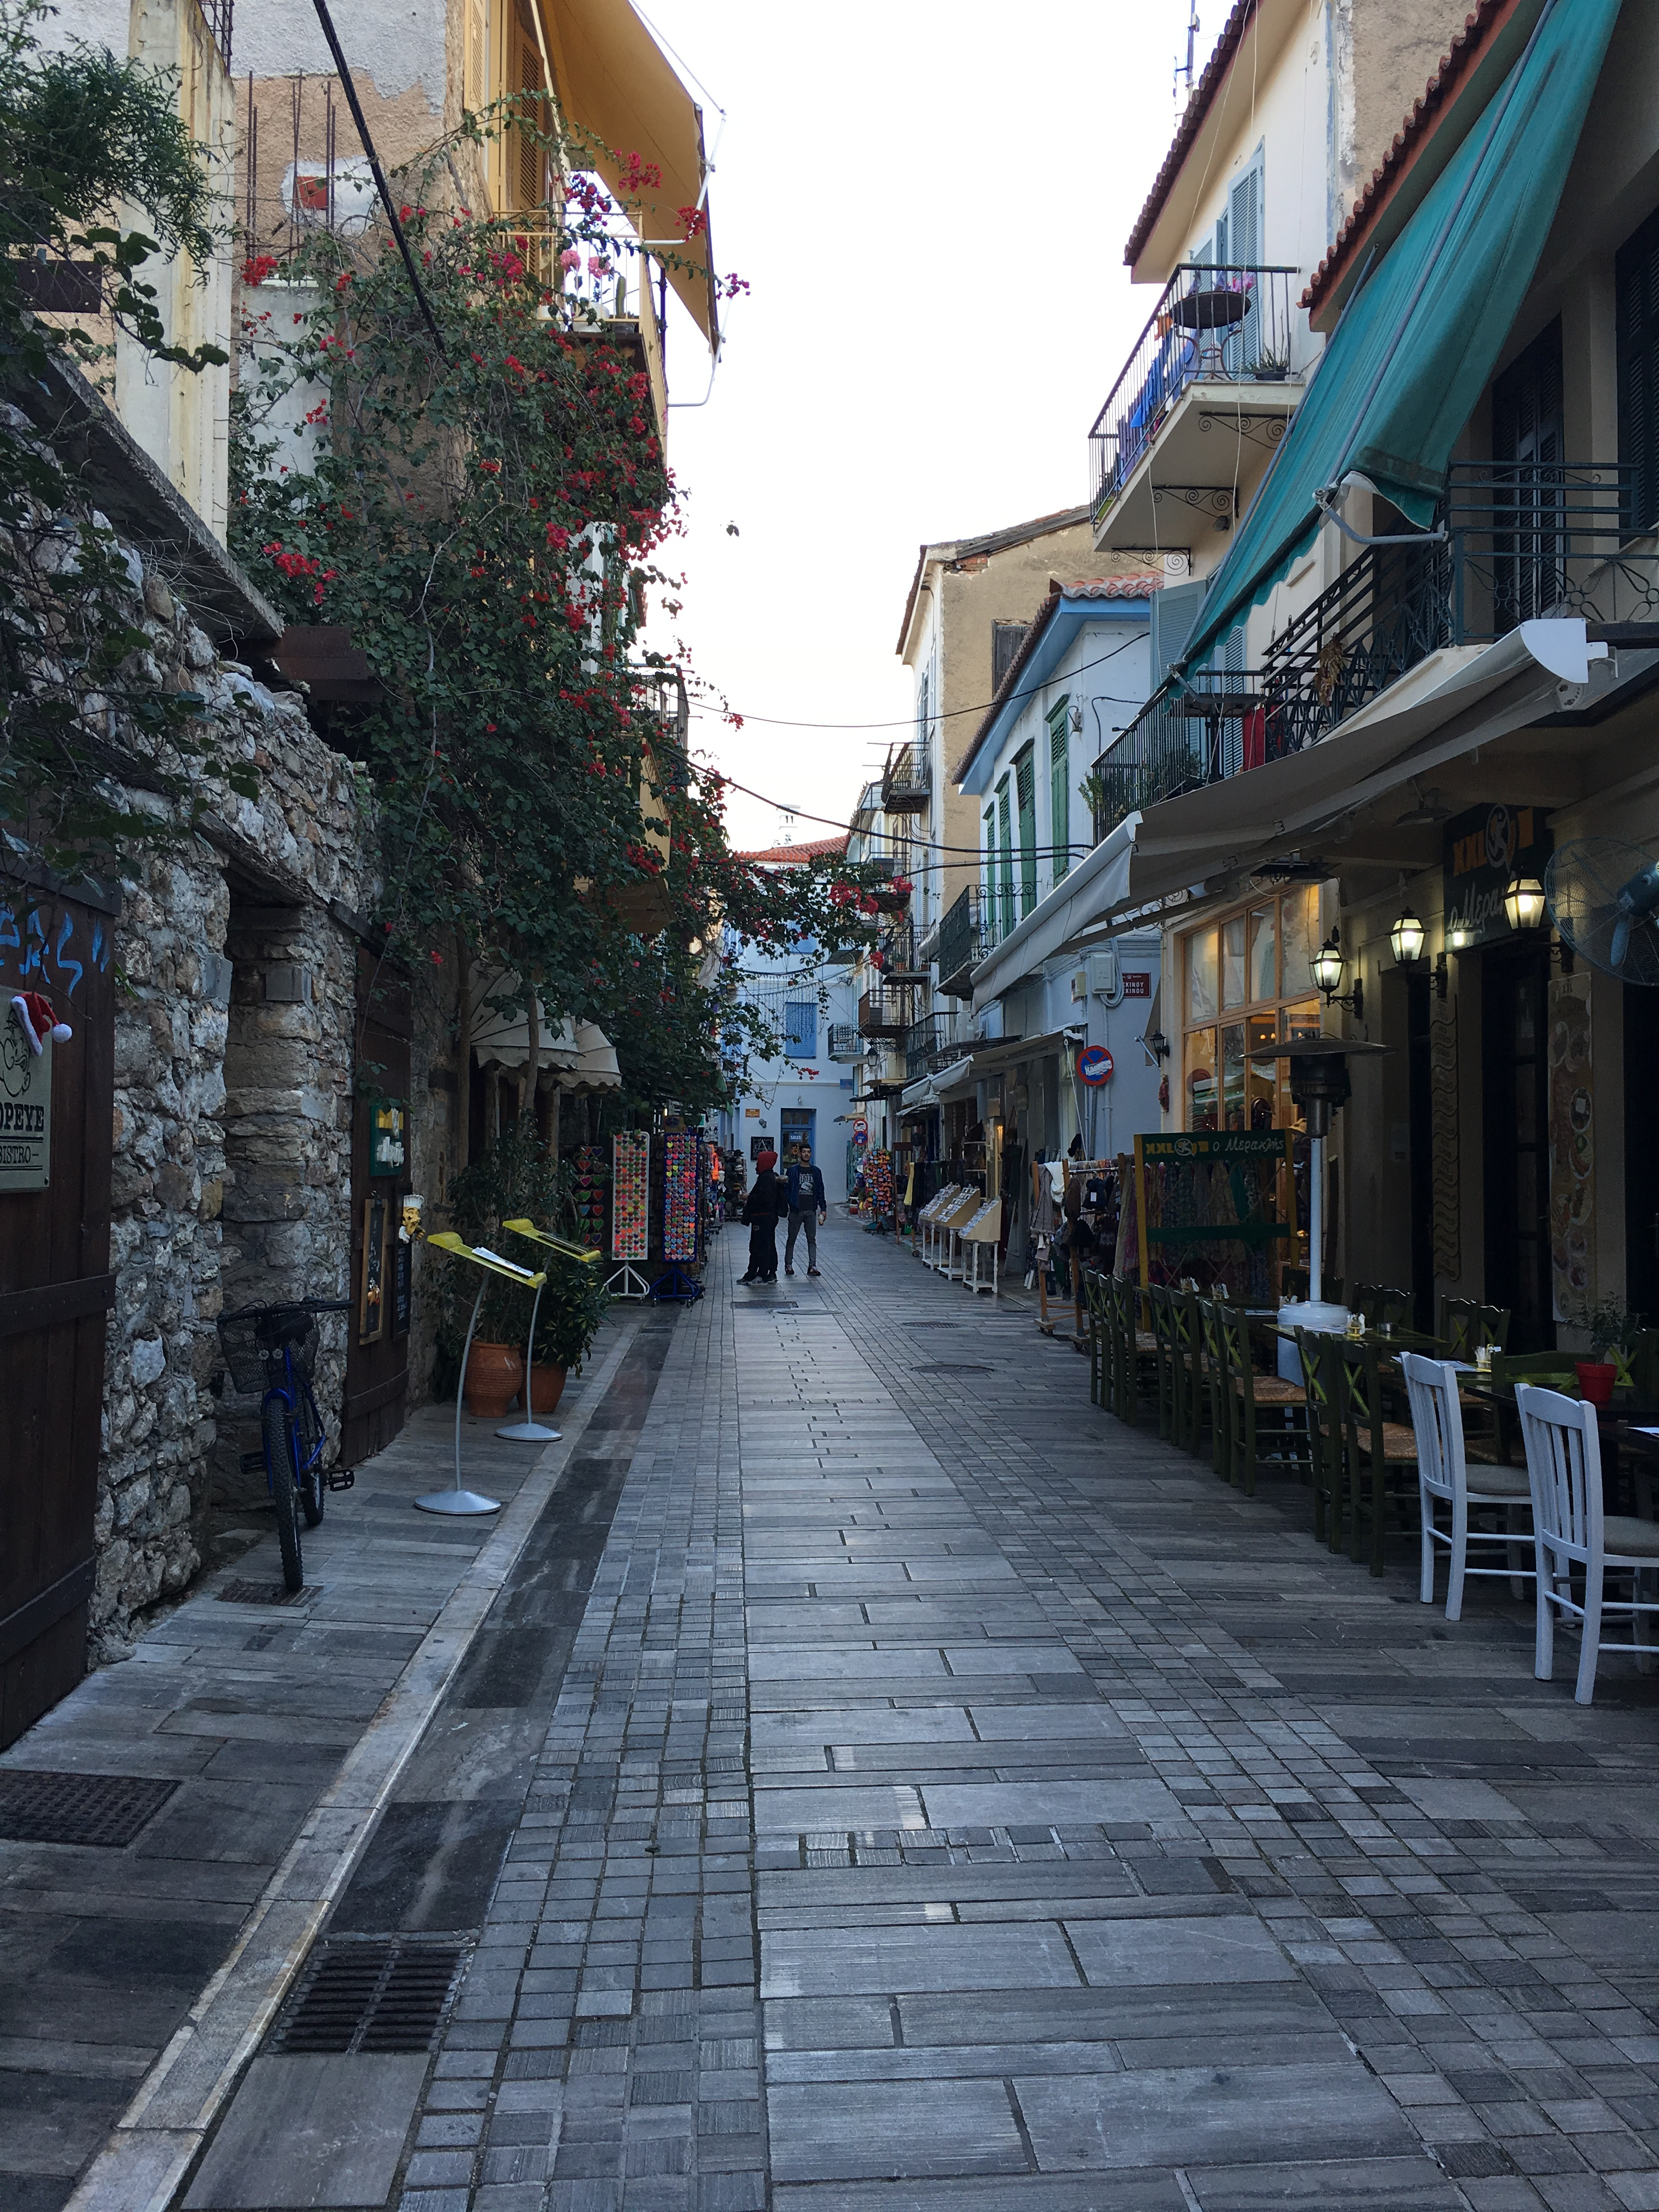 Artwork from the book - The magic of Nafplio and more of Greece- Trips with Kostas Kefalakis by Shuli Sapir-Nevo Photo and Motto - Illustrated by shulamit SAPIR-NEVO - Ourboox.com